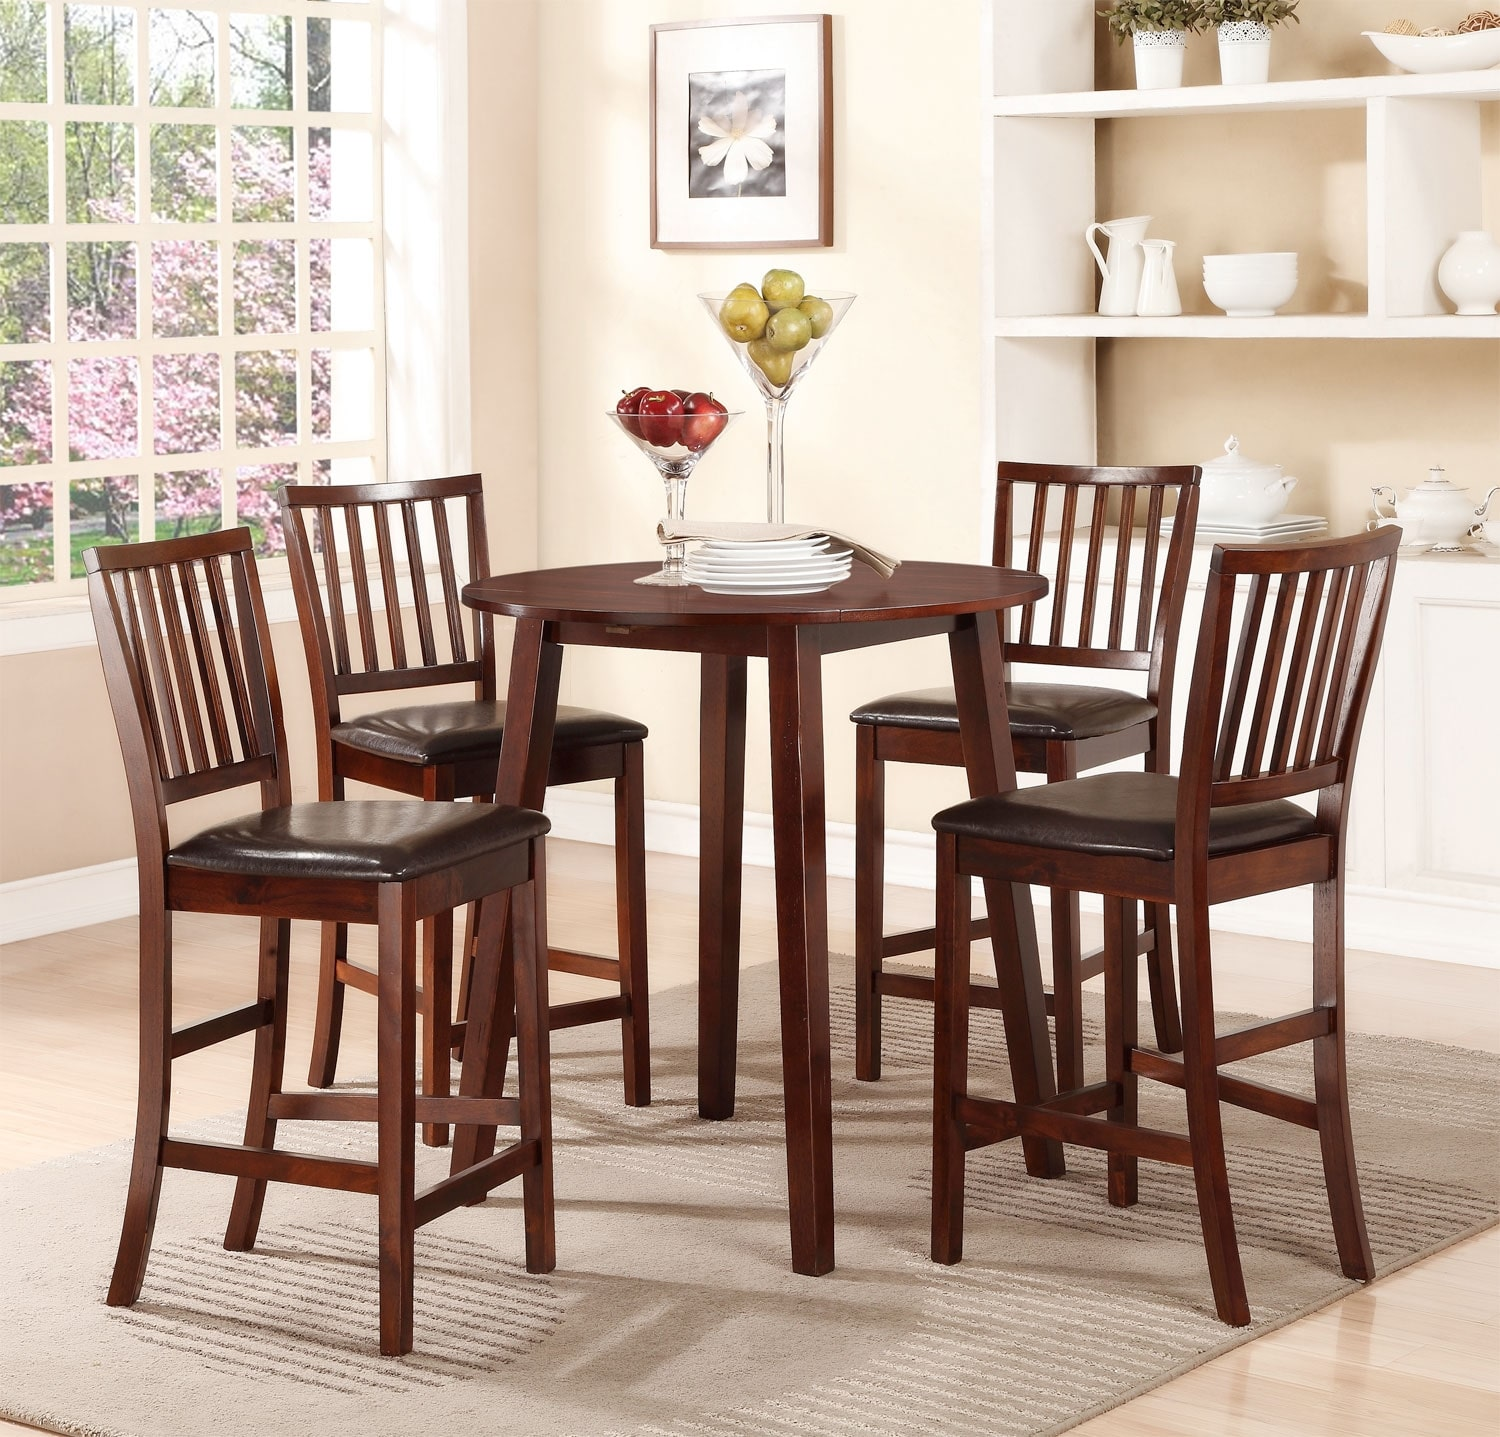 Dining Room Furniture - Adara 5-Piece Counter-Height Dining Package – Round Table